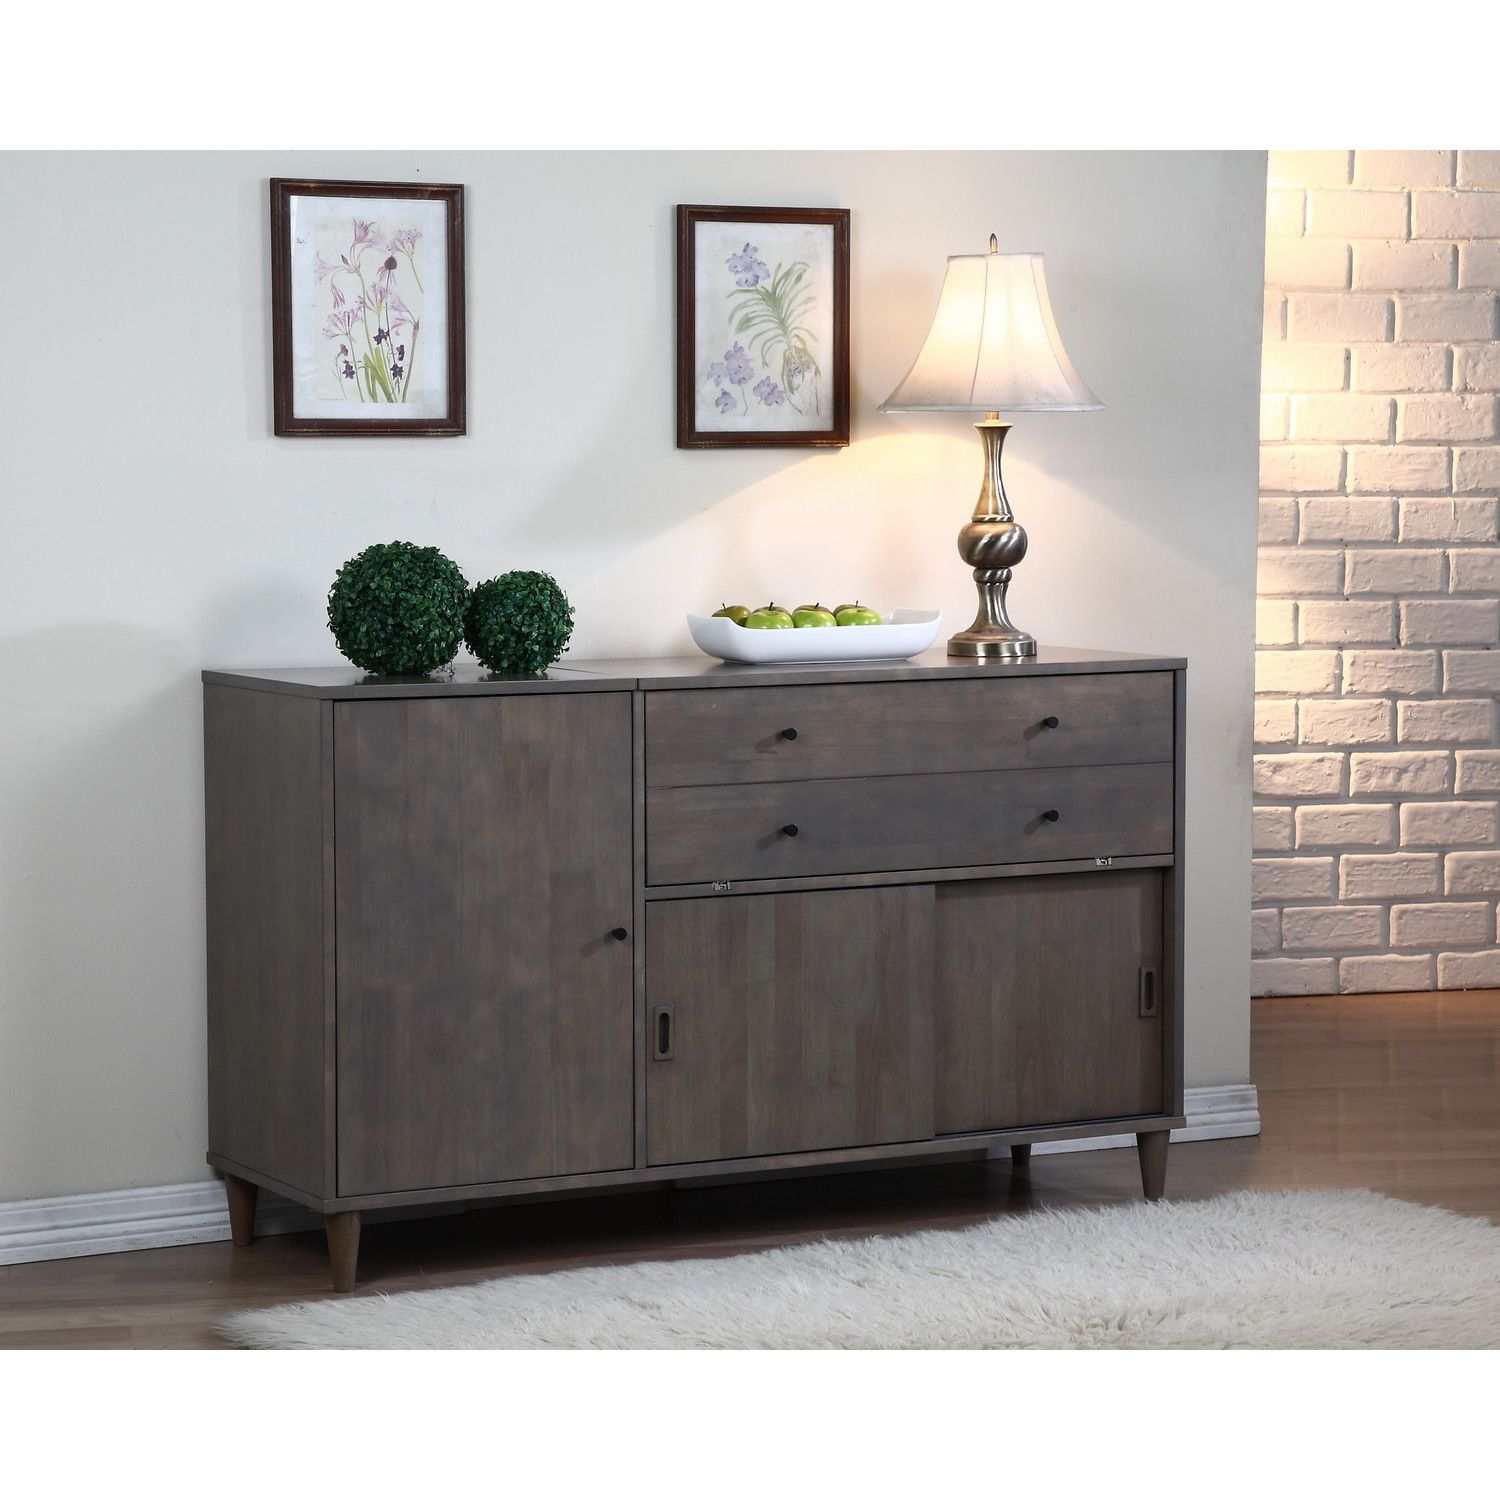 Add A Stylish Touch To Your Dining Room With The Vilas Light Charcoal Grey Buffet